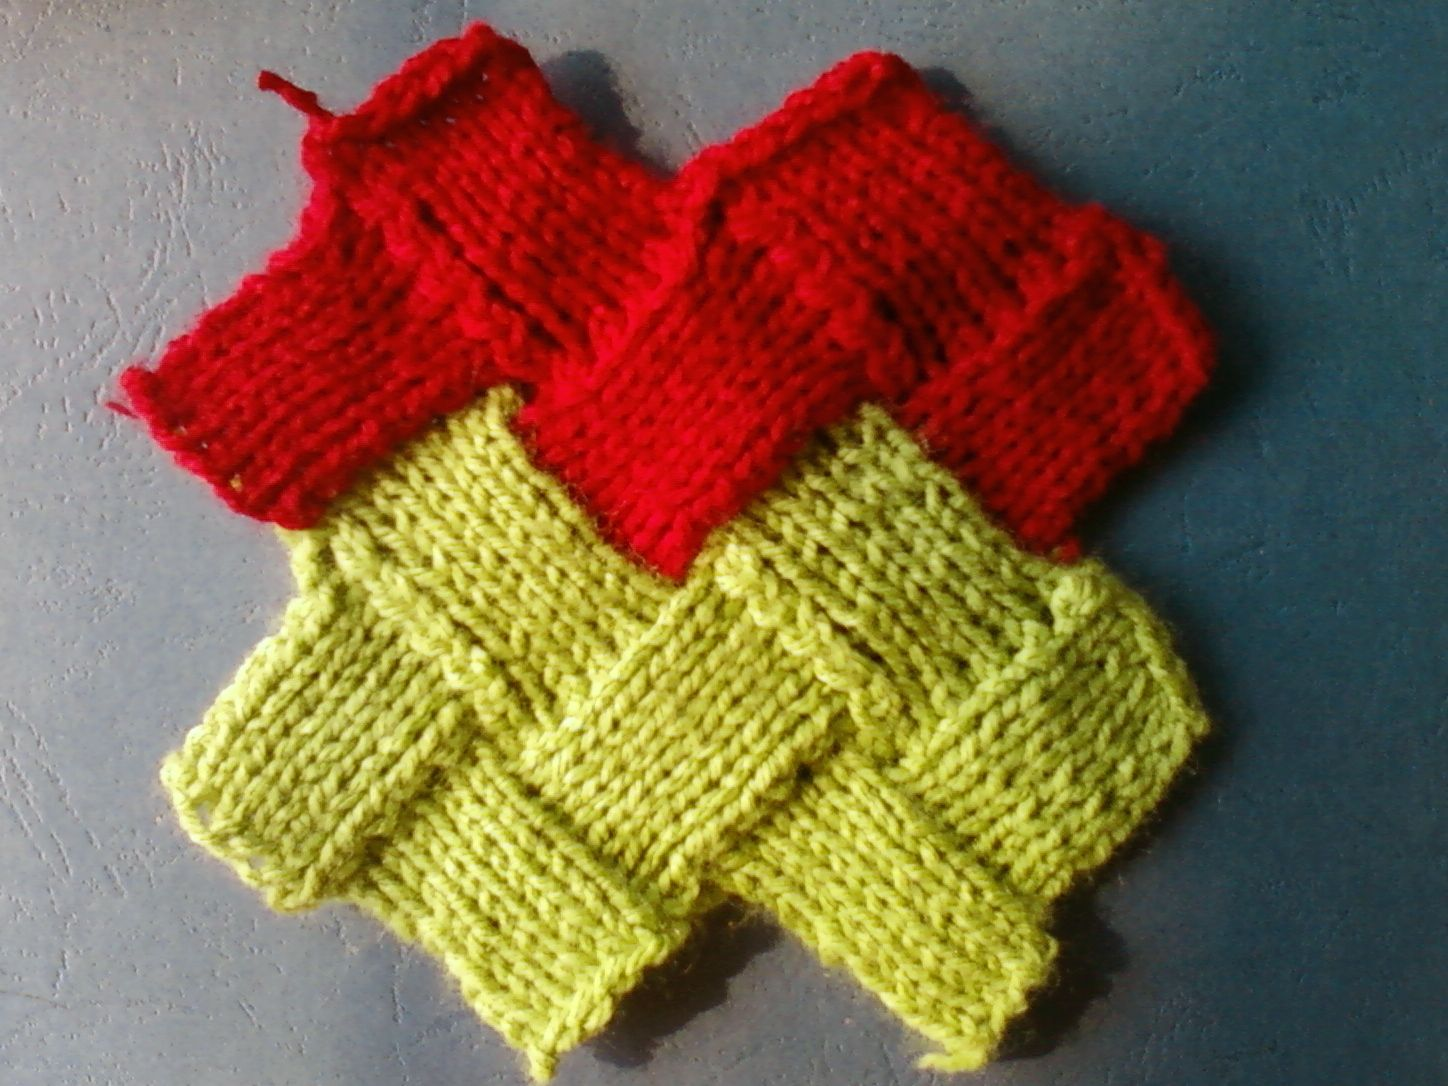 The following is the detailed instructions for try Zig zag entrelac ...